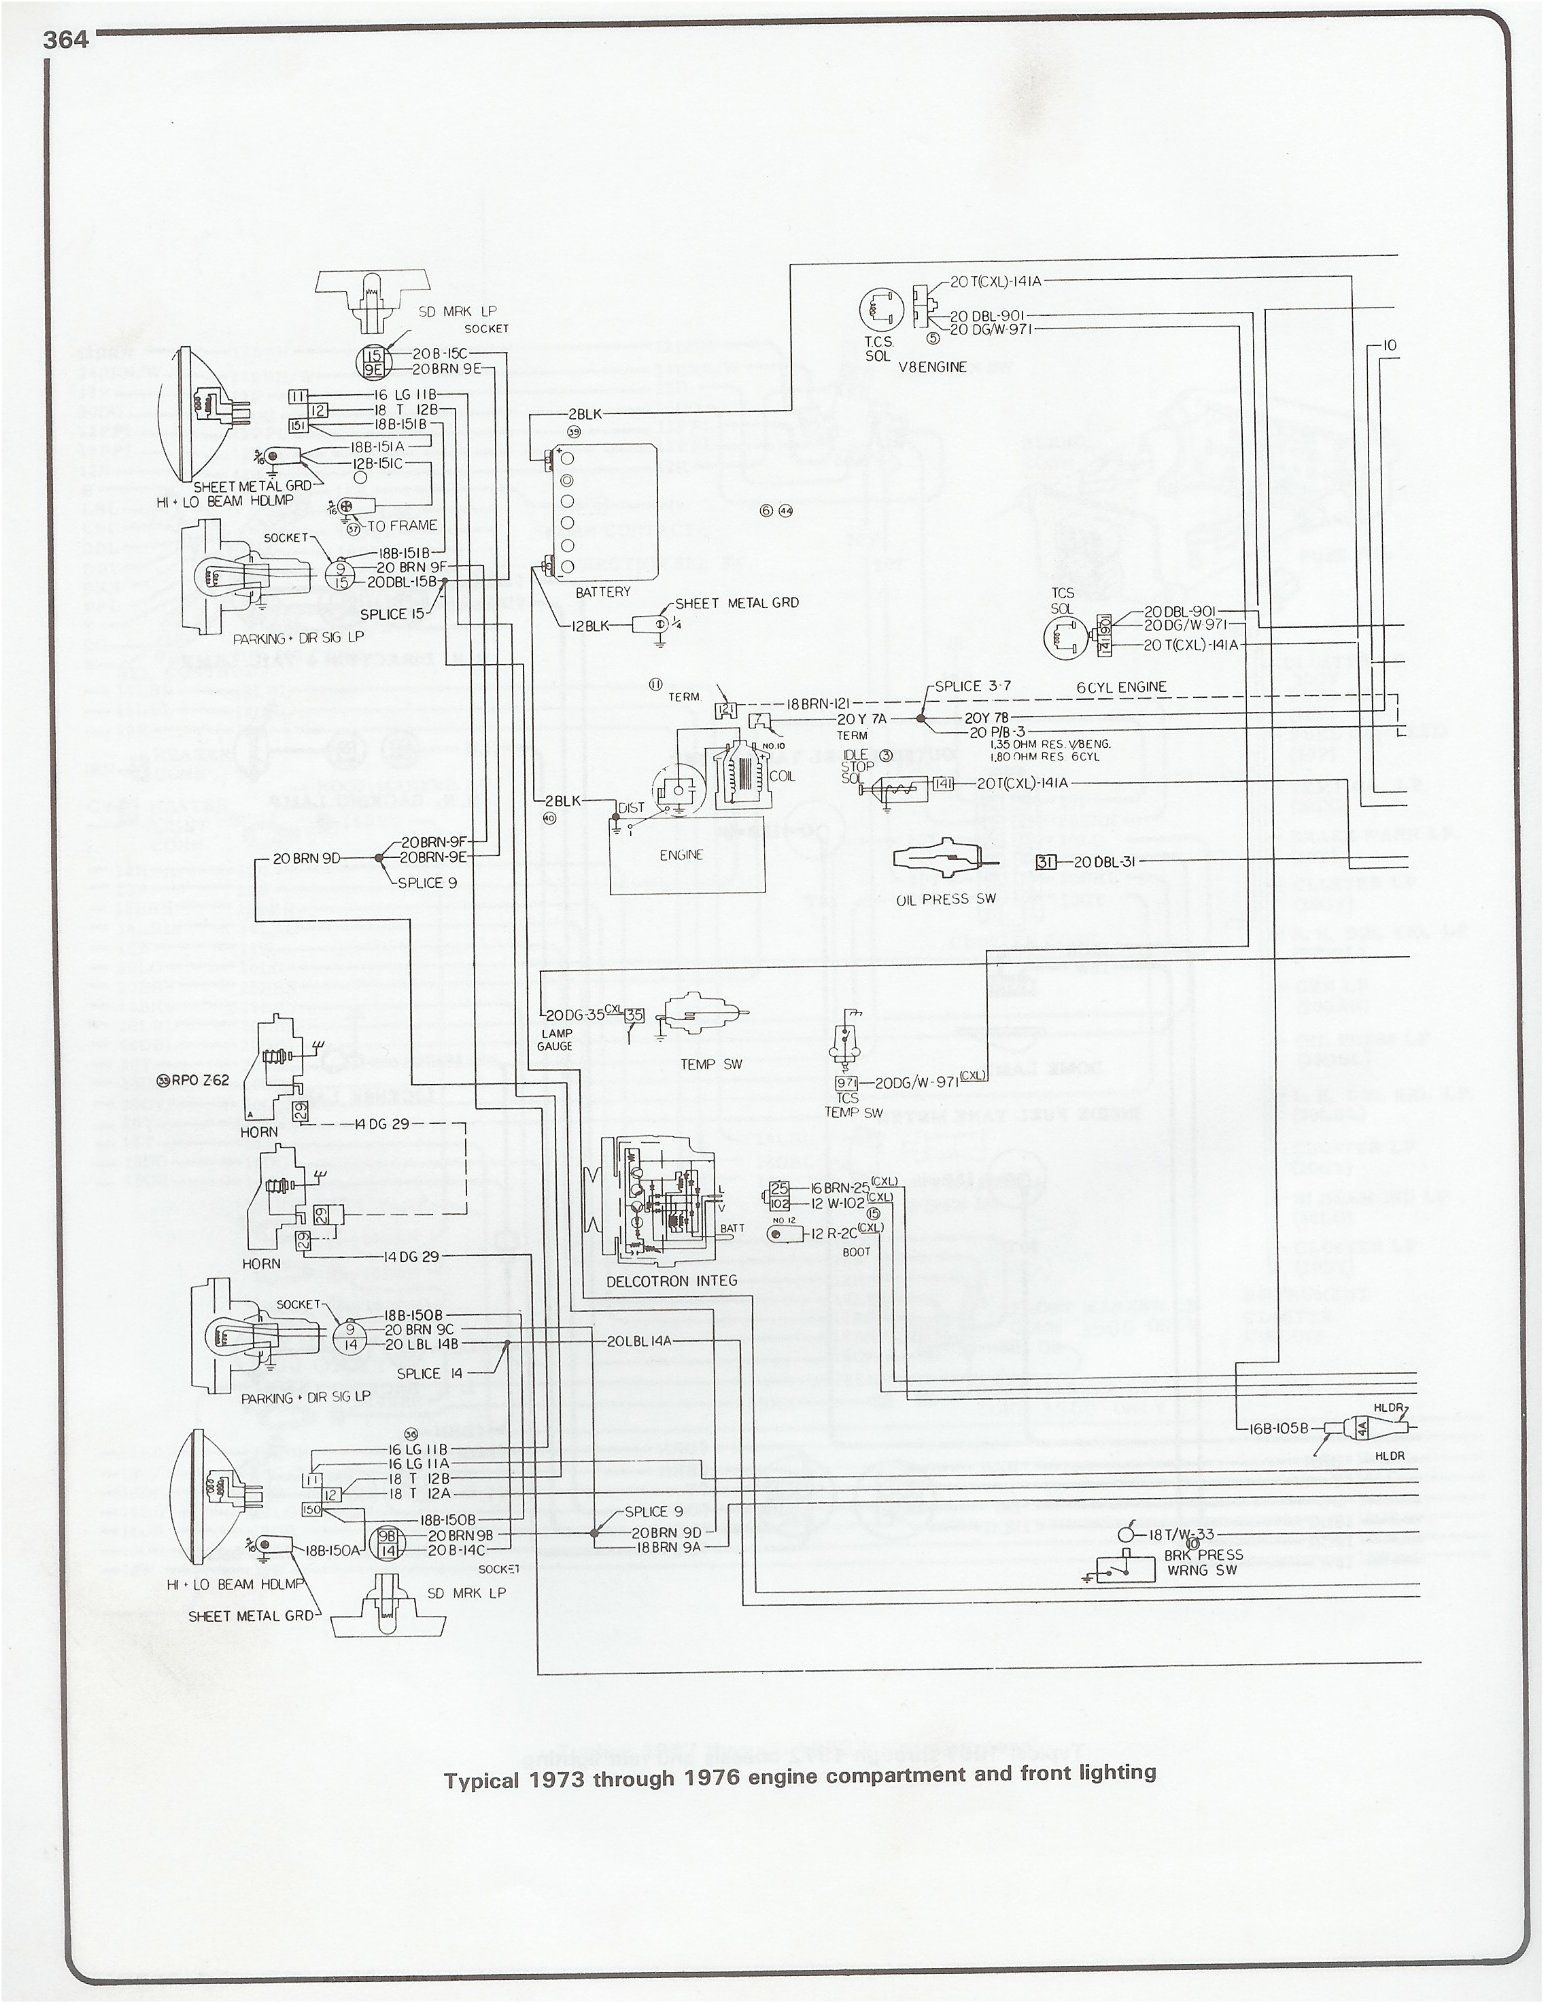 medium resolution of wiring diagram 1973 1976 chevy pickup chevy wiring diagramwiring diagram 1973 1976 chevy pickup chevy wiring